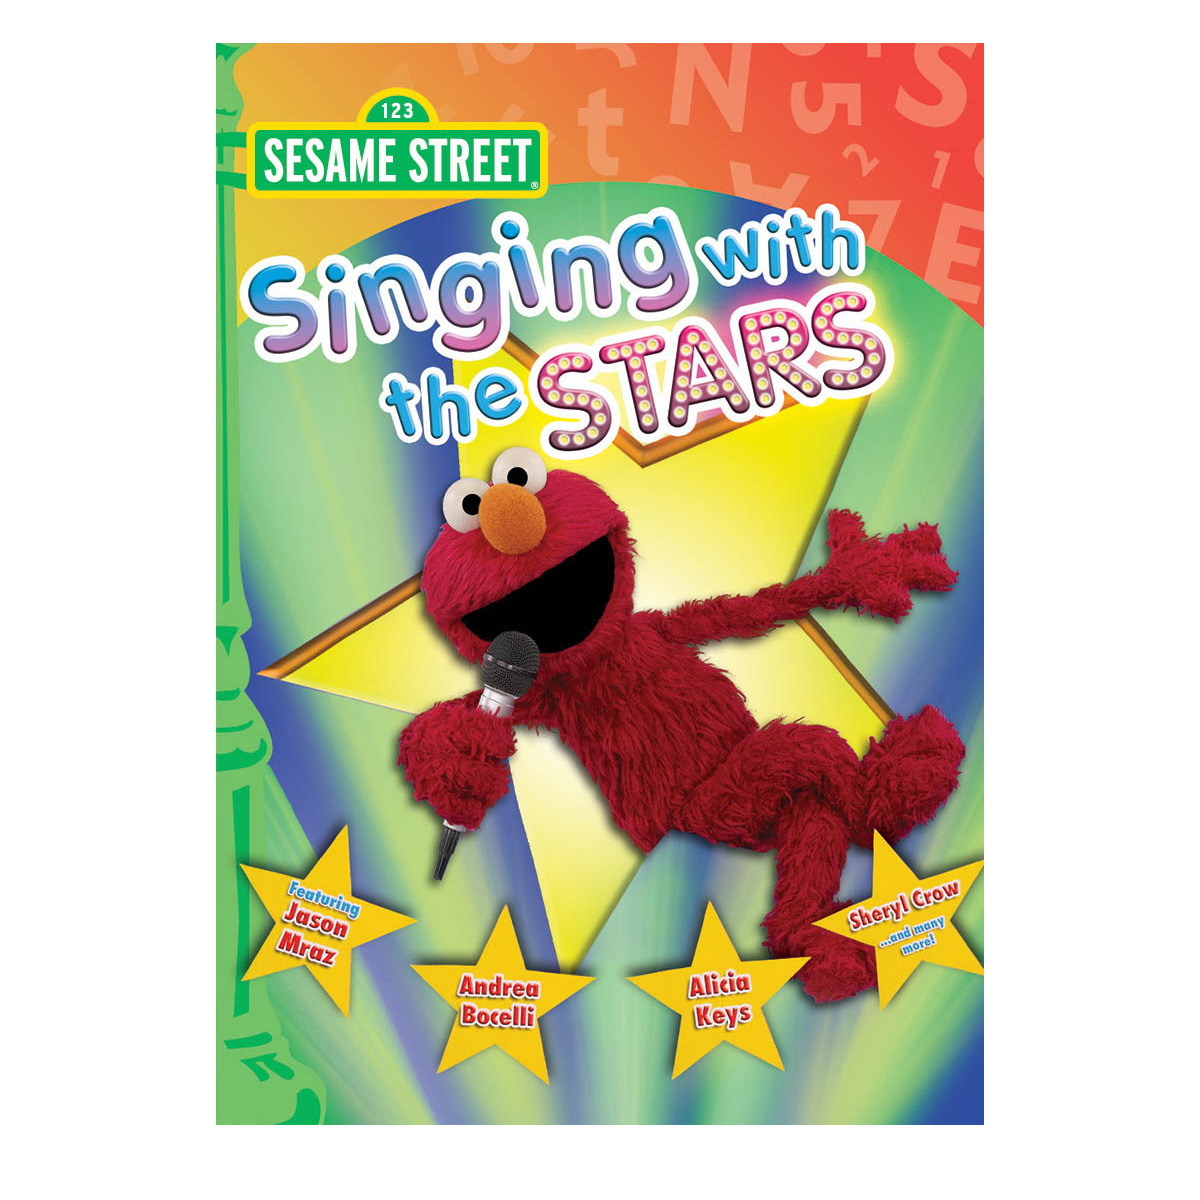 Sesame Street: Singing with the Stars DVD